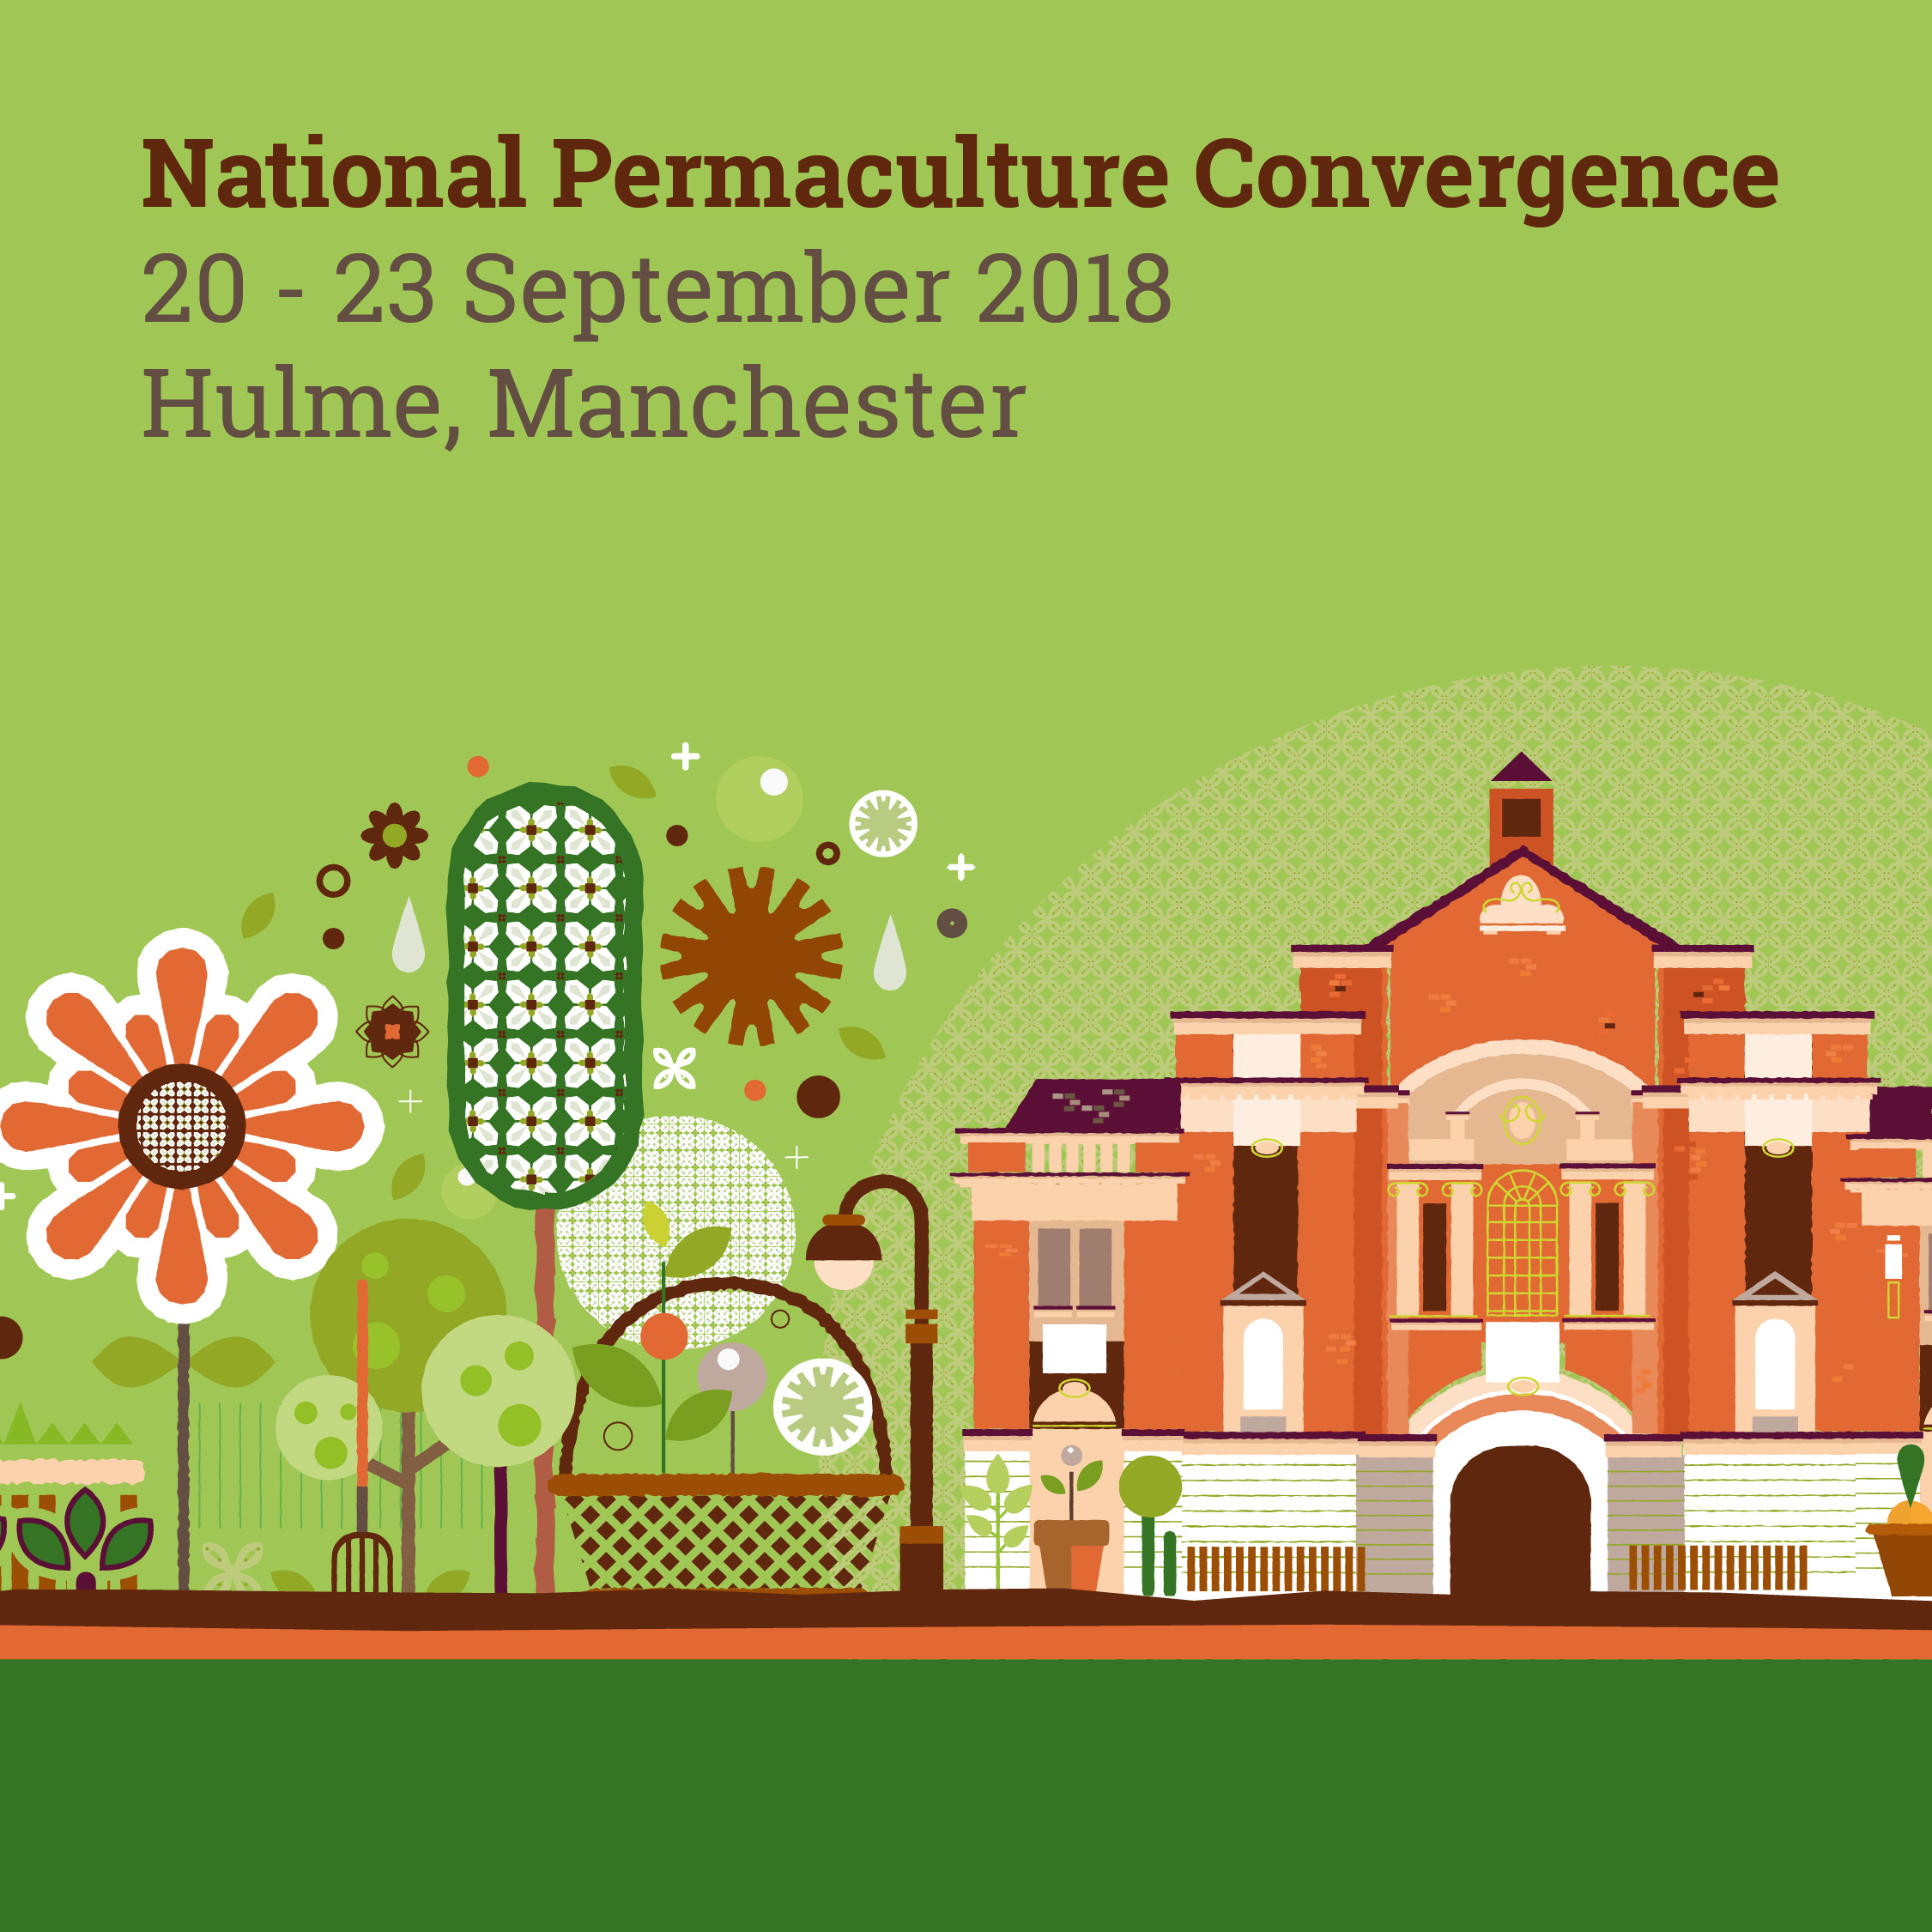 National Permaculture Convergence 20 - 23 September 2018 Hulme, Manchester